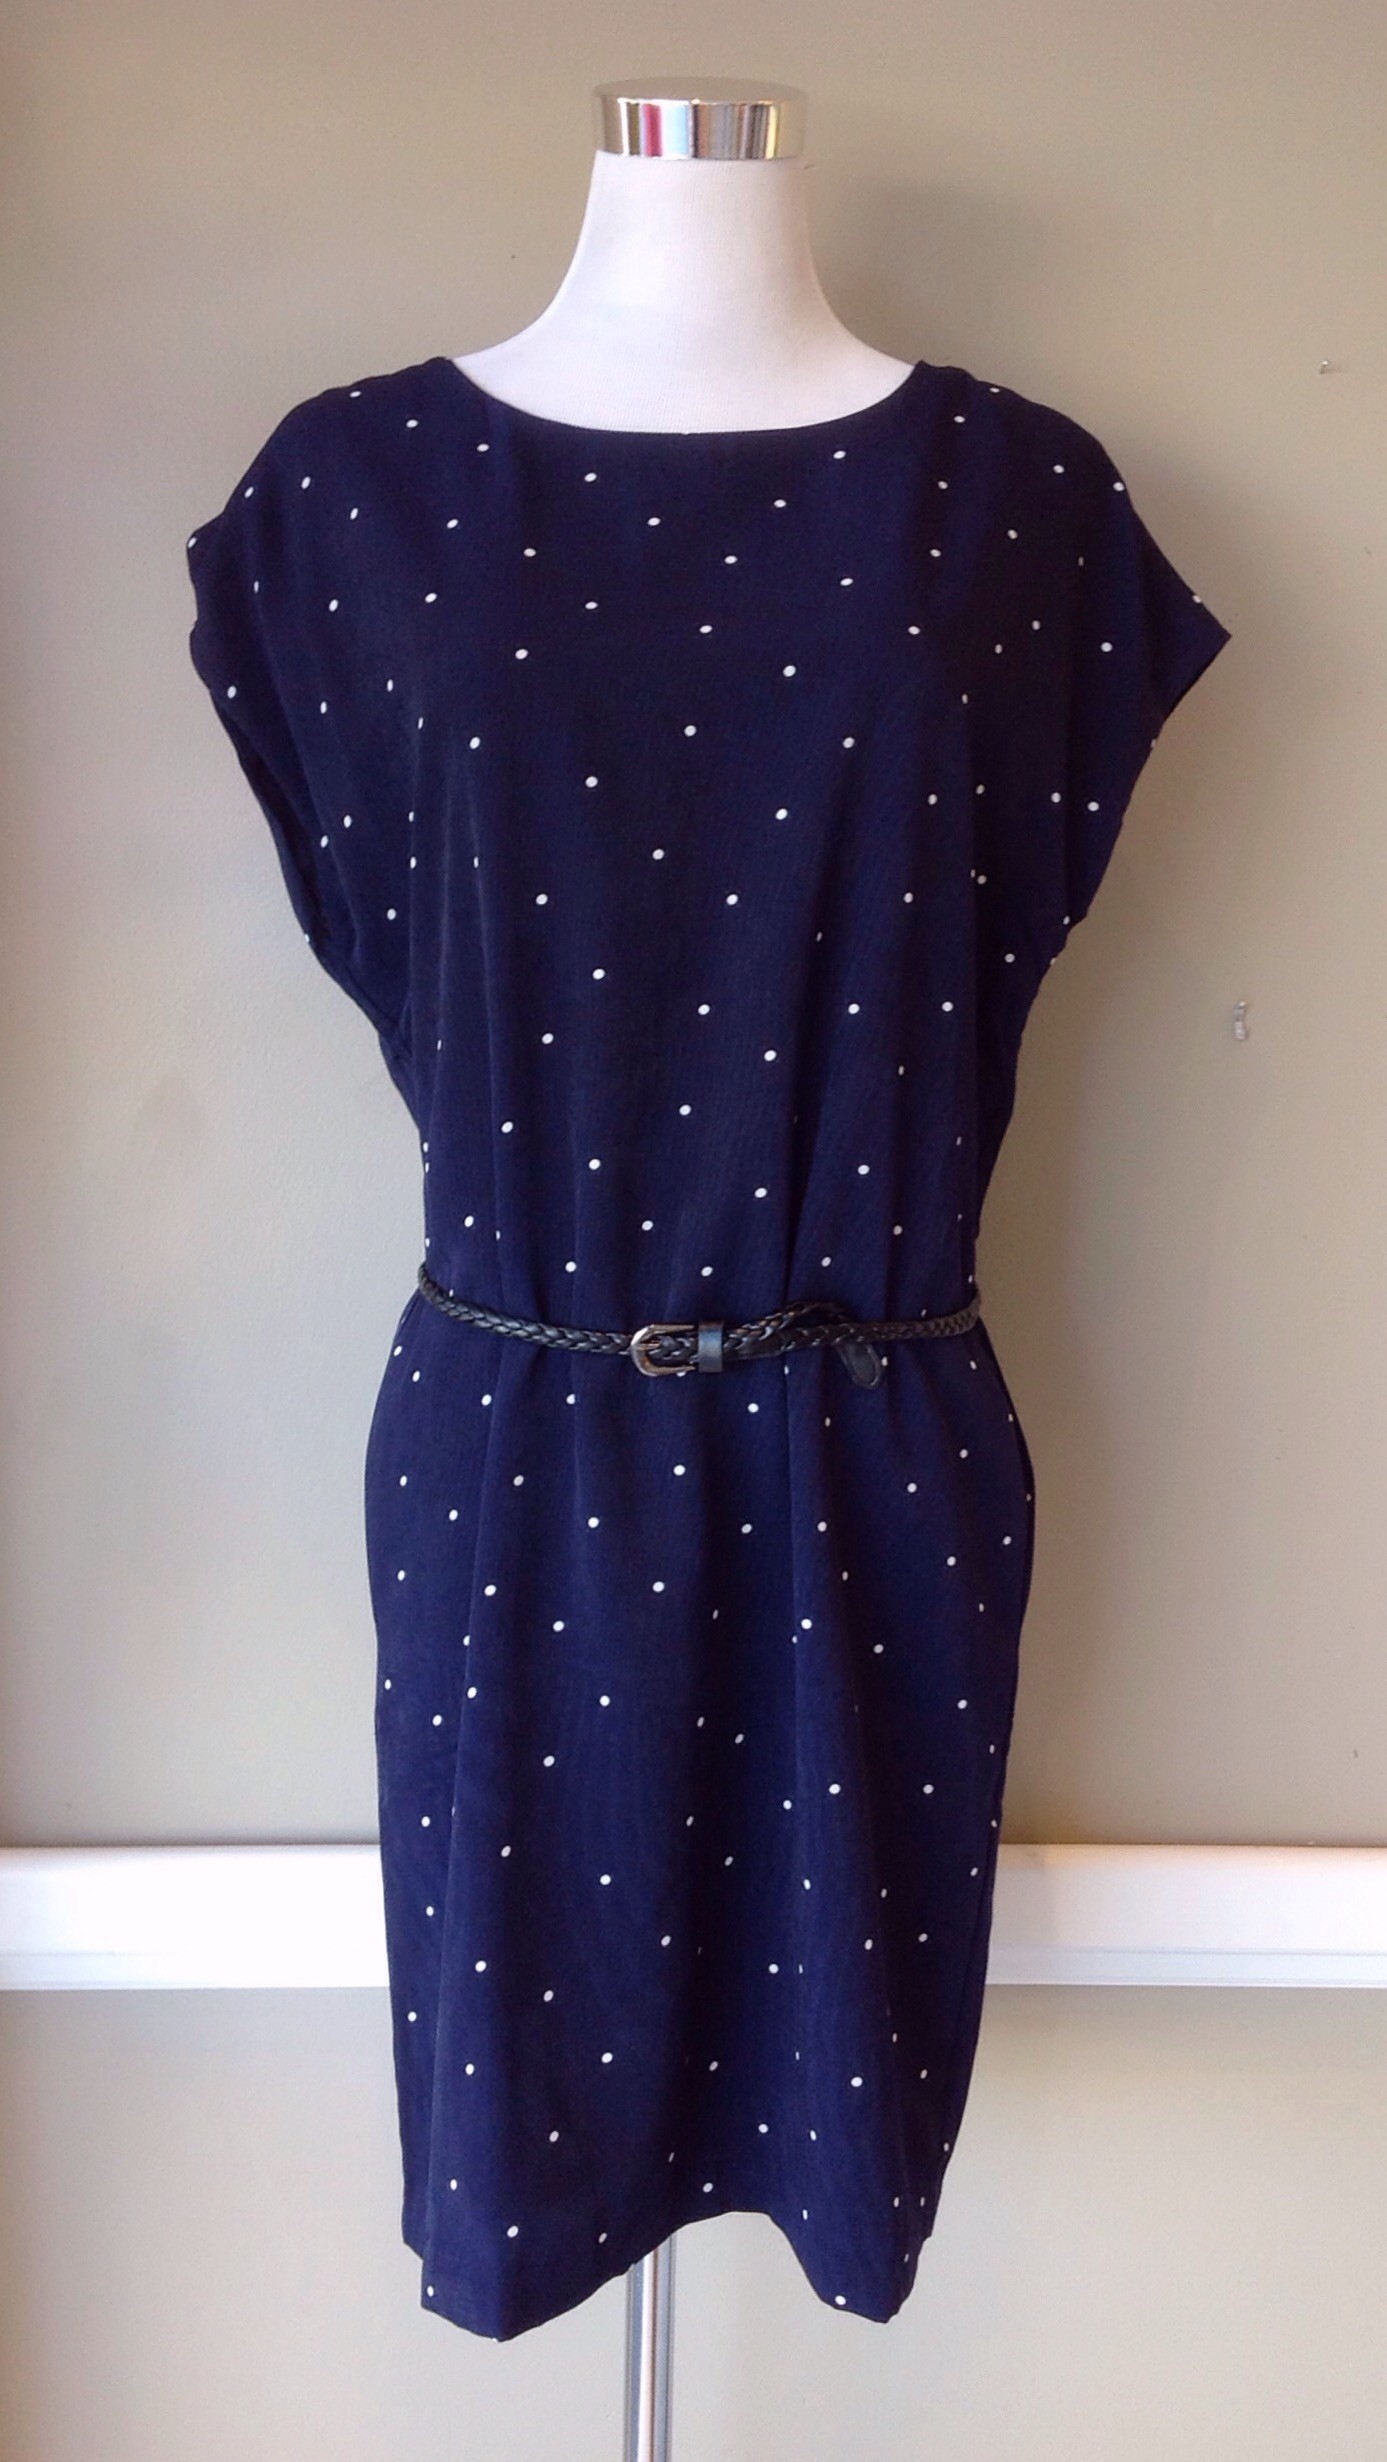 Navy and white polka dot shift dress with removable belt and side pockets, $42